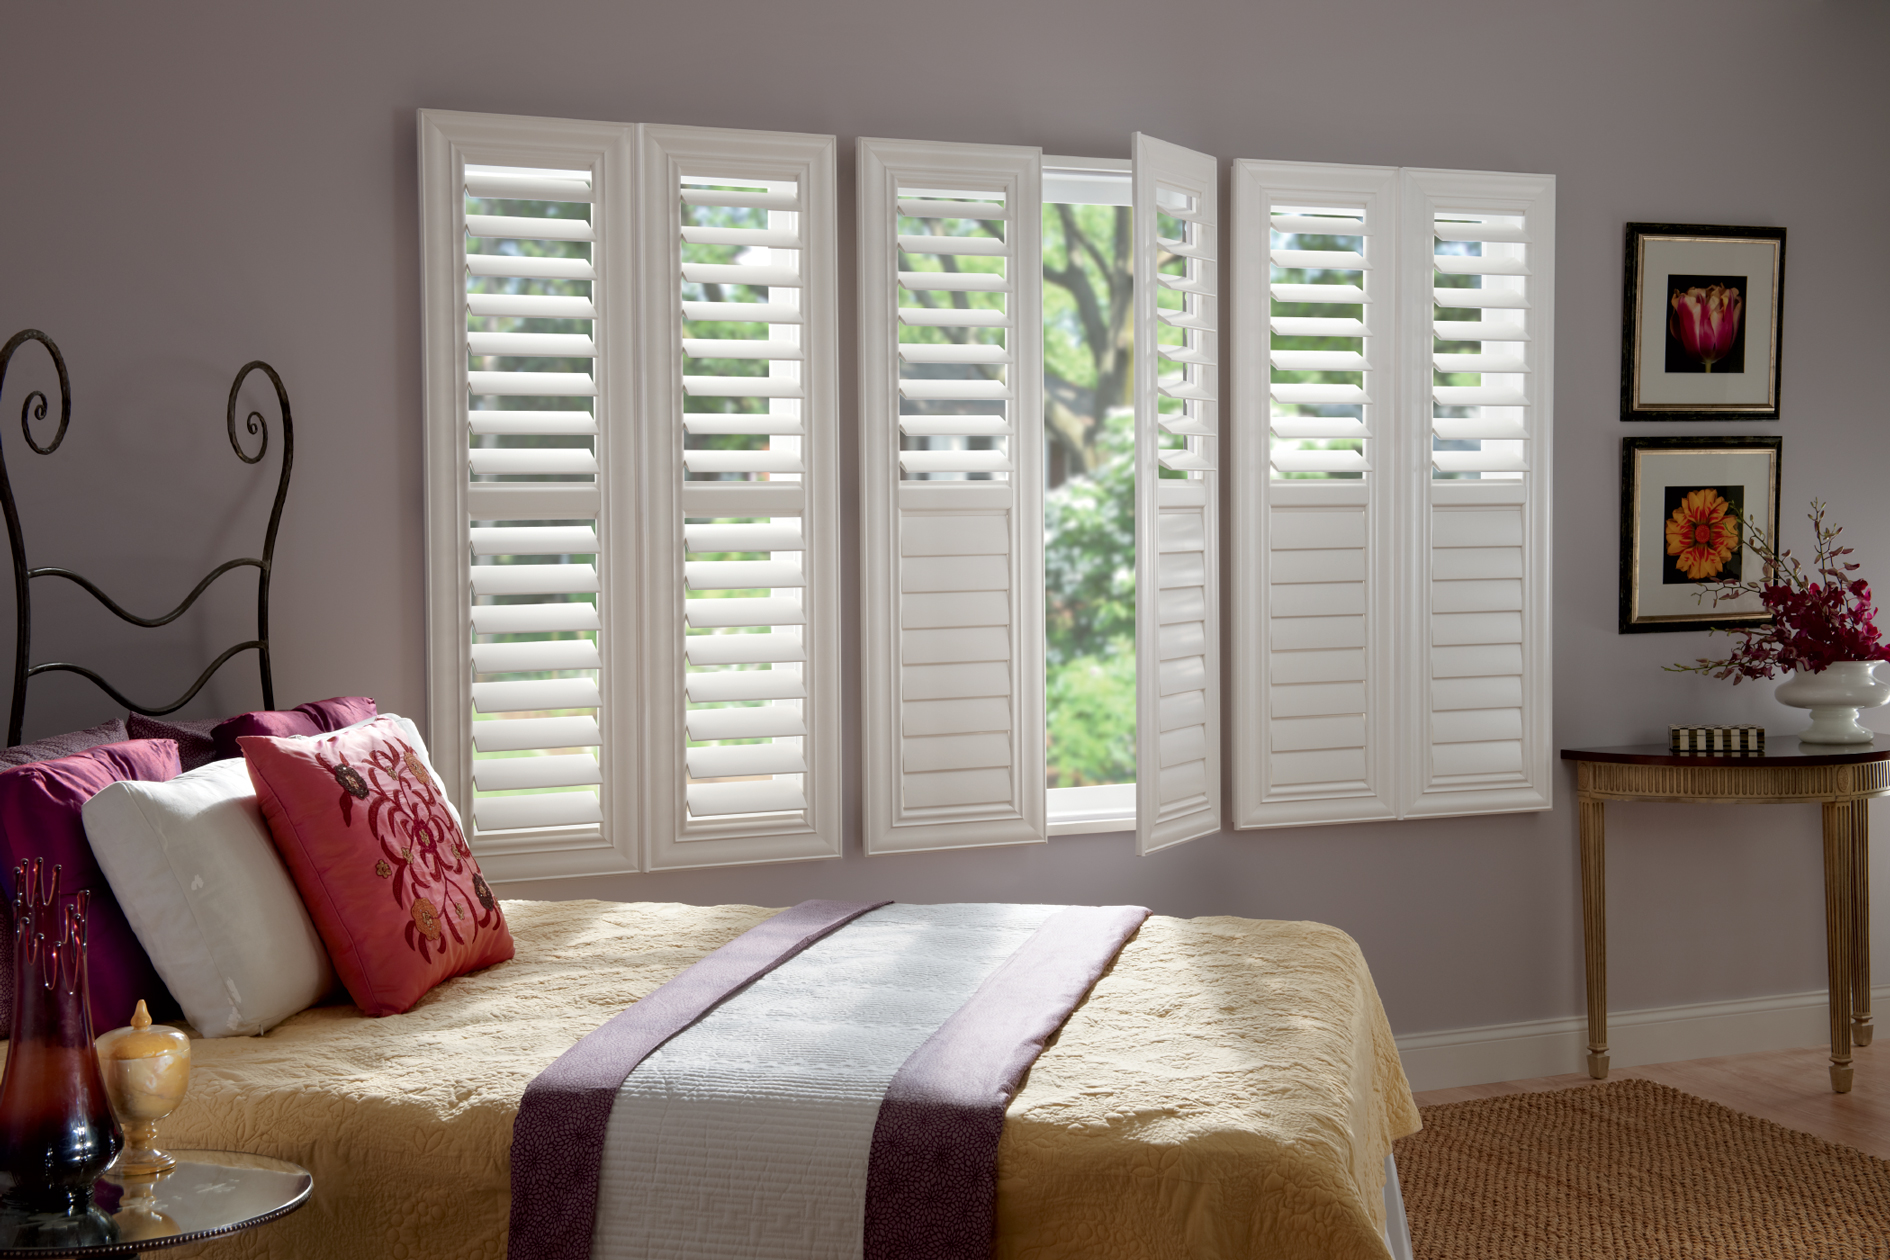 5 Reasons Why You Need Window Shutters My Decorative